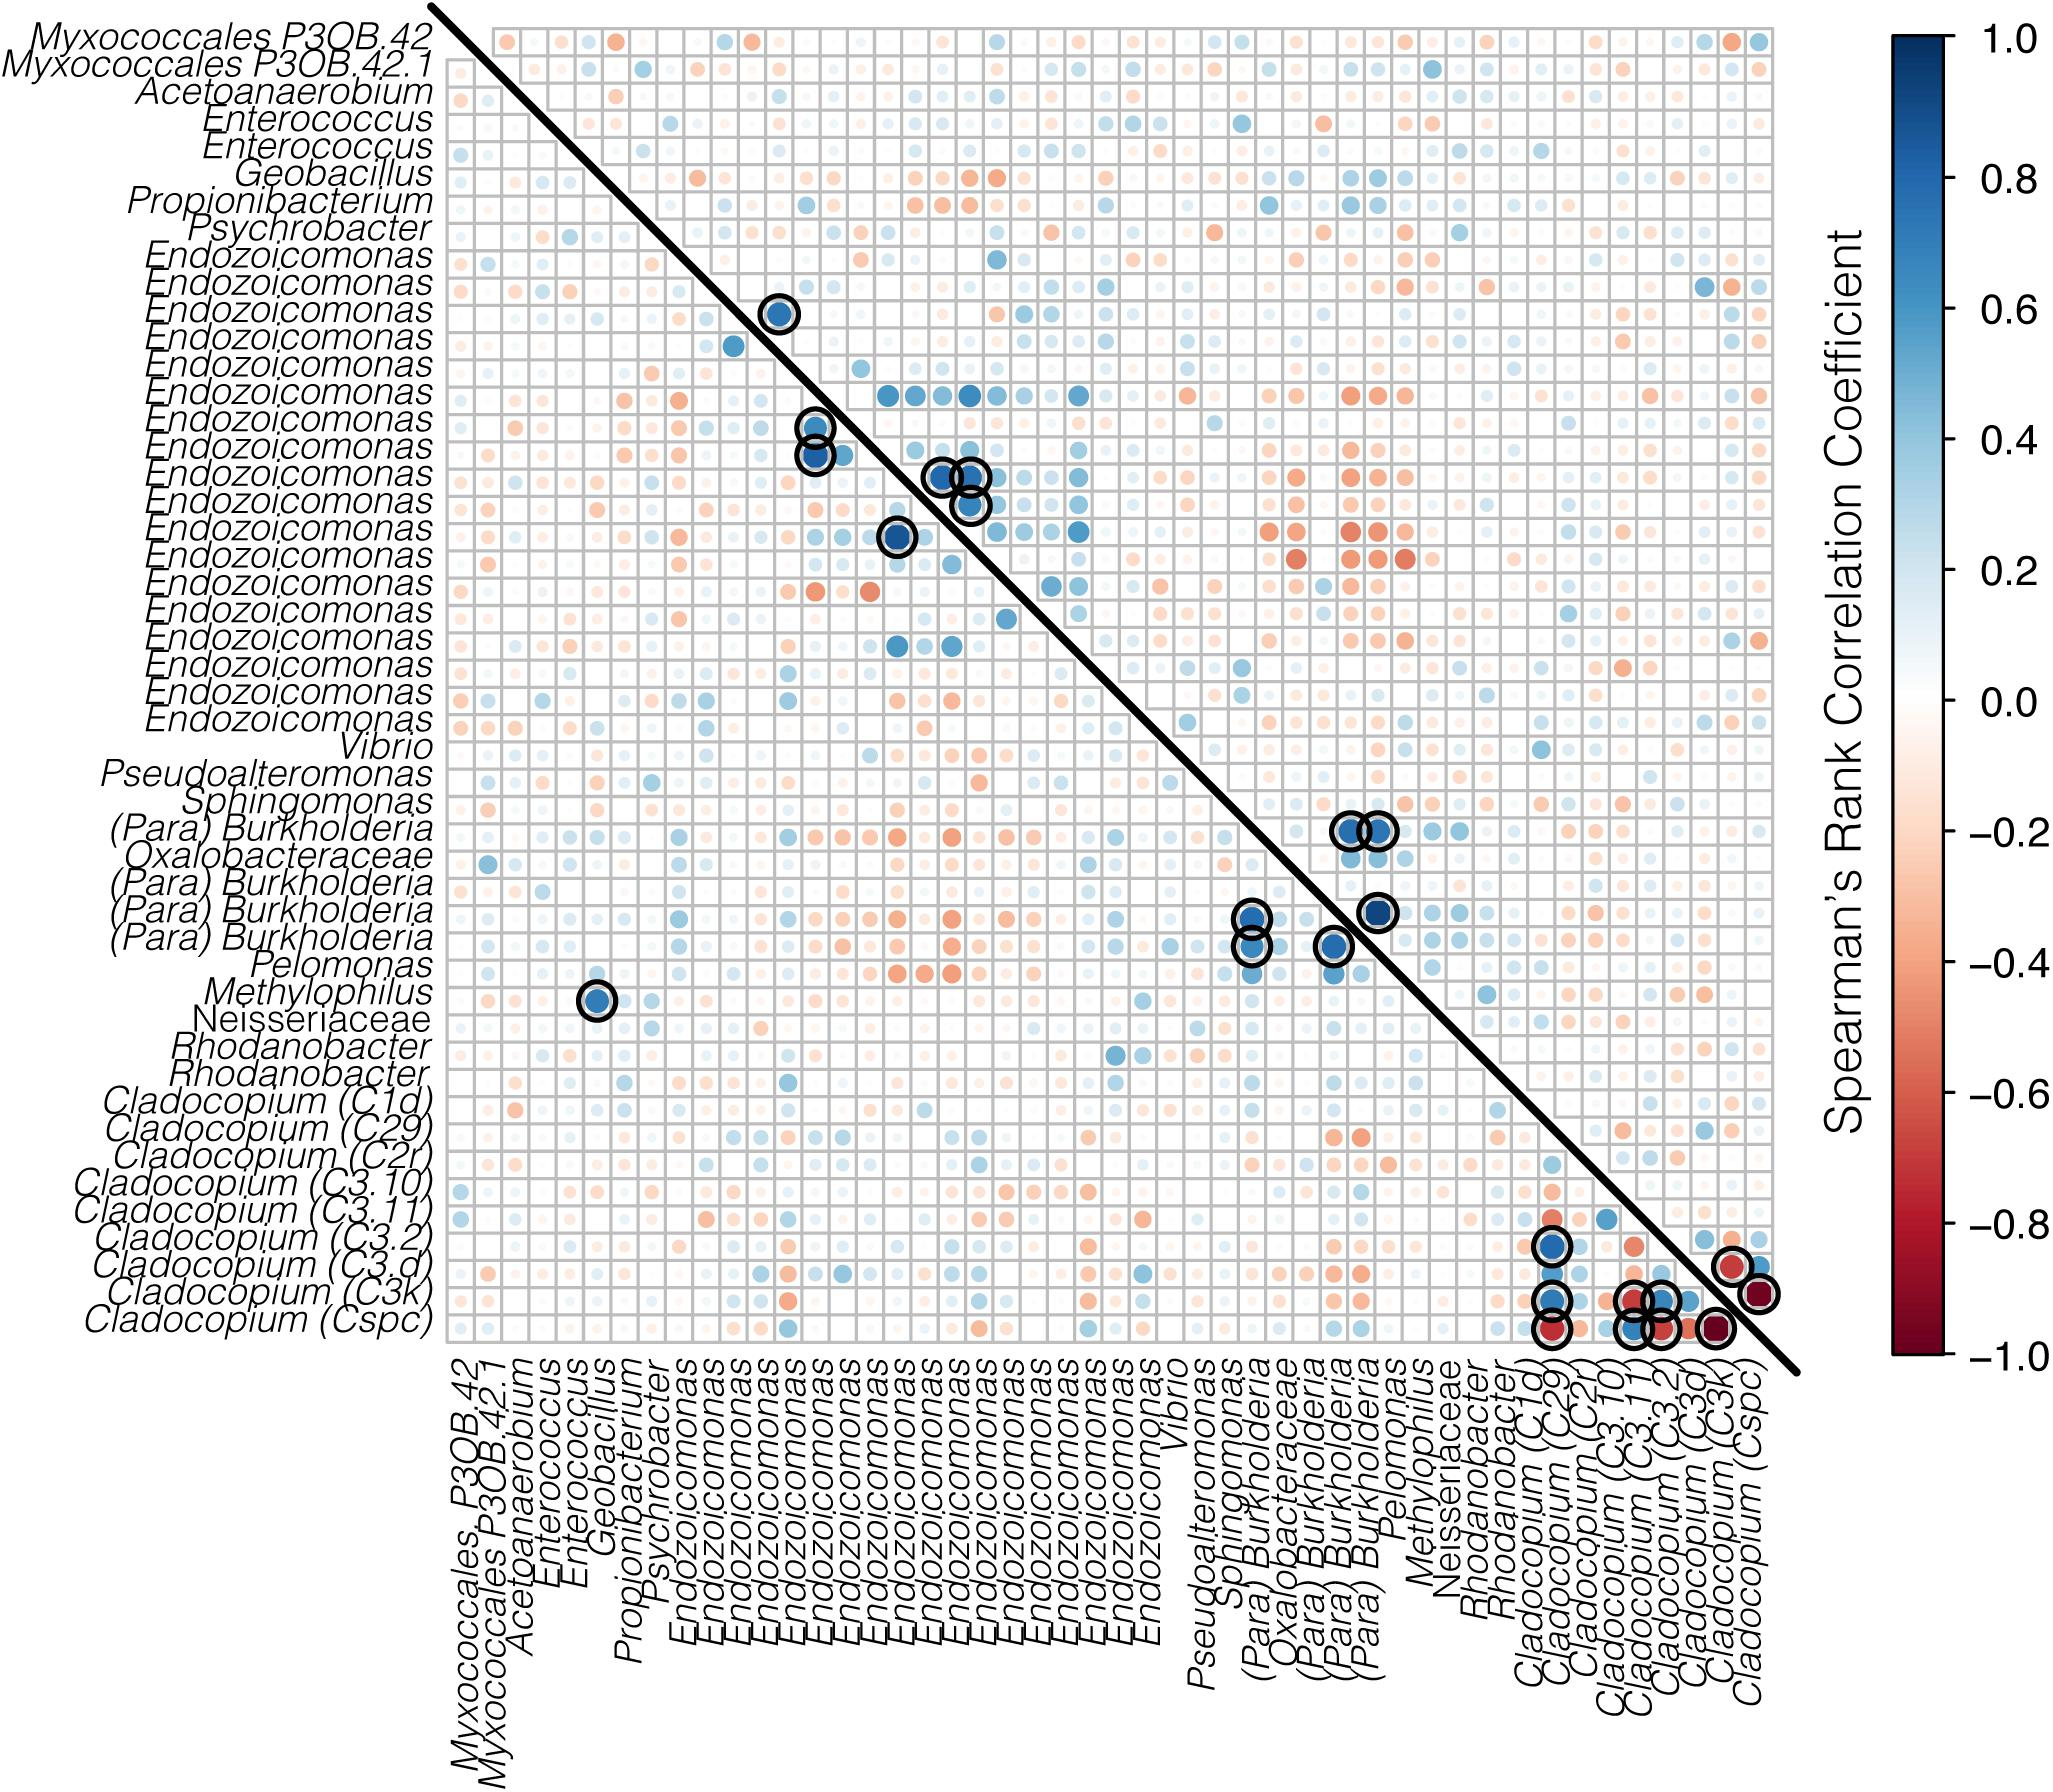 Frontiers | Temporal Variation in the Microbiome of Acropora